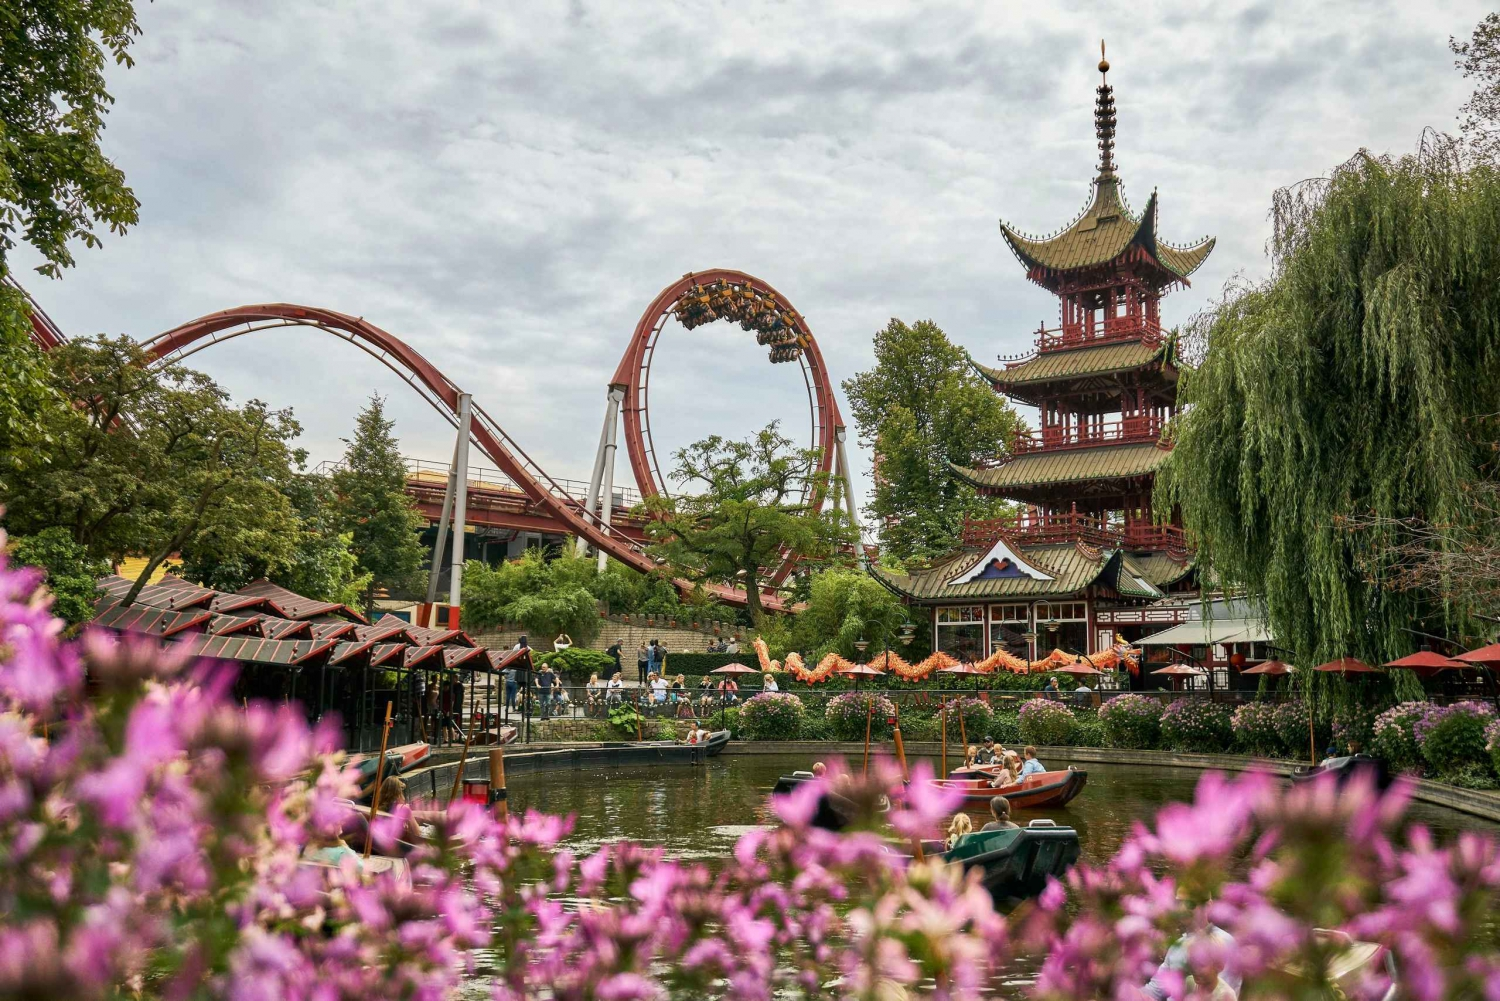 Copenhagen Tivoli Gardens 1-Day Unlimited Rides Ticket